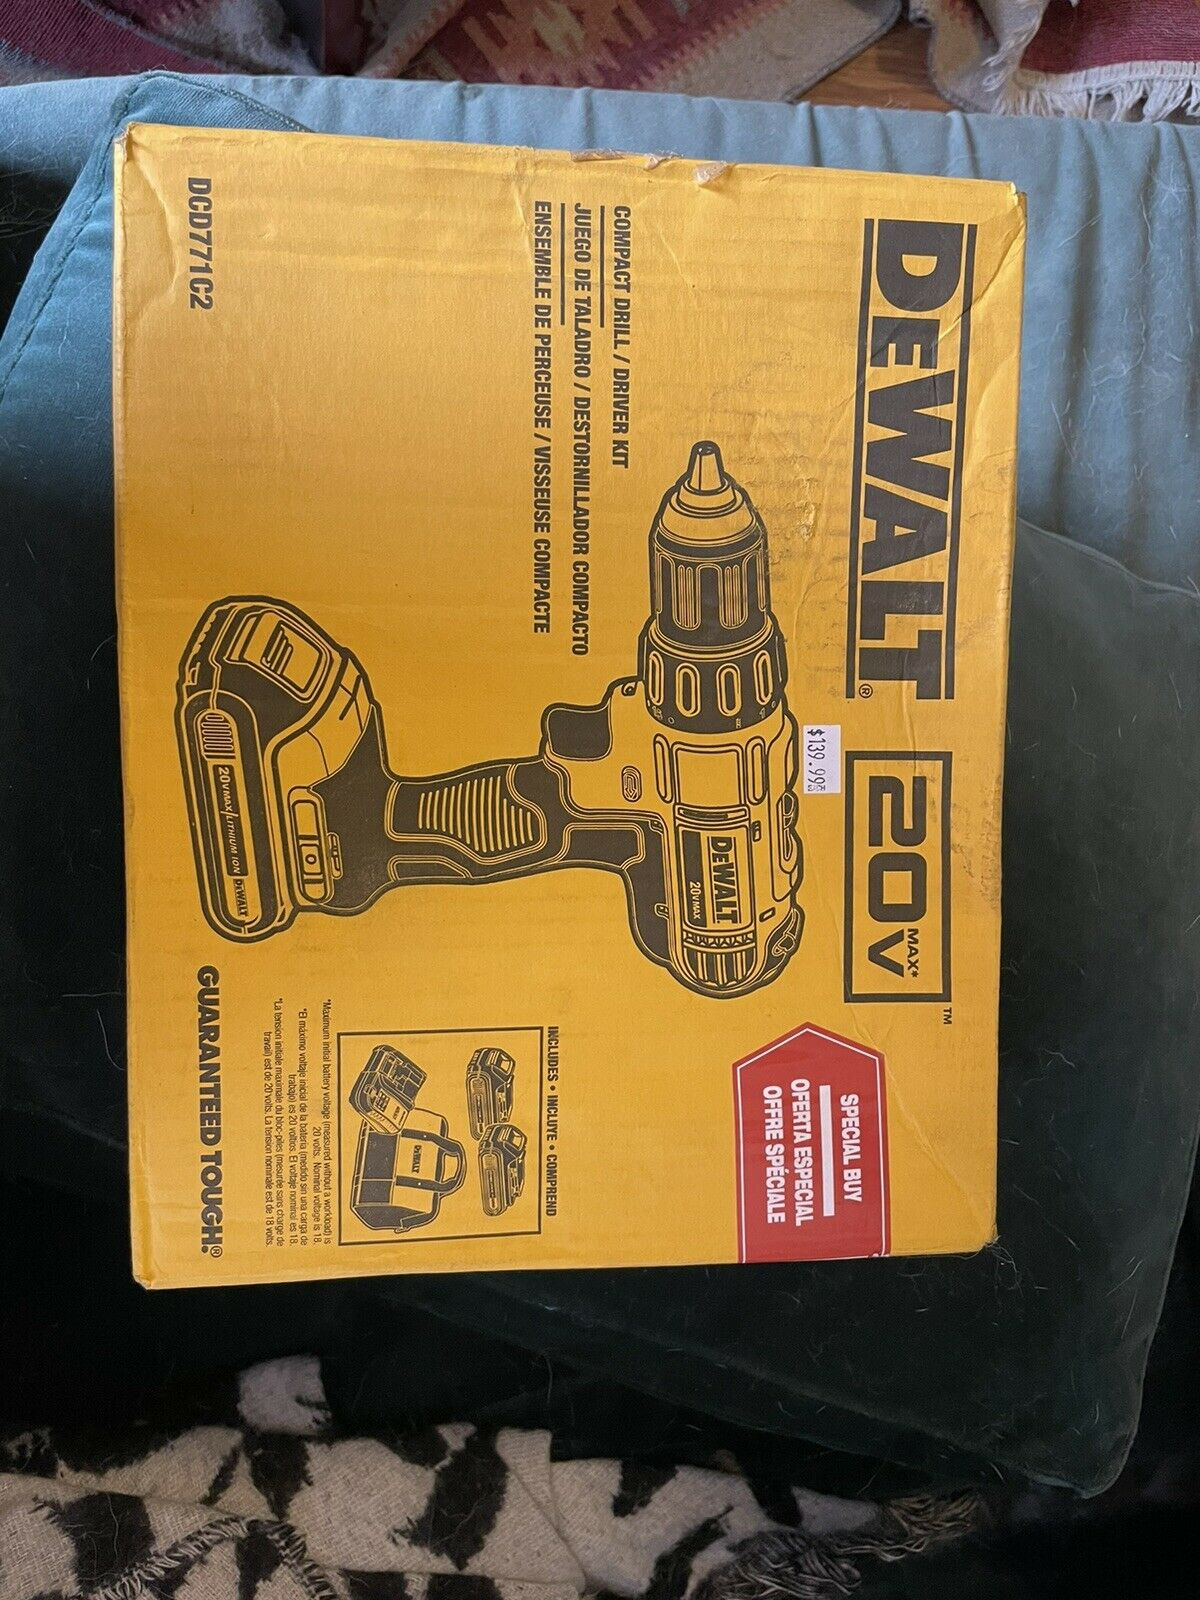 N467360 hkqgy-62 Dewalt DCD771 Cordless Drill Driver (Kit with 2 20V Lithium-Ion Batteries,...